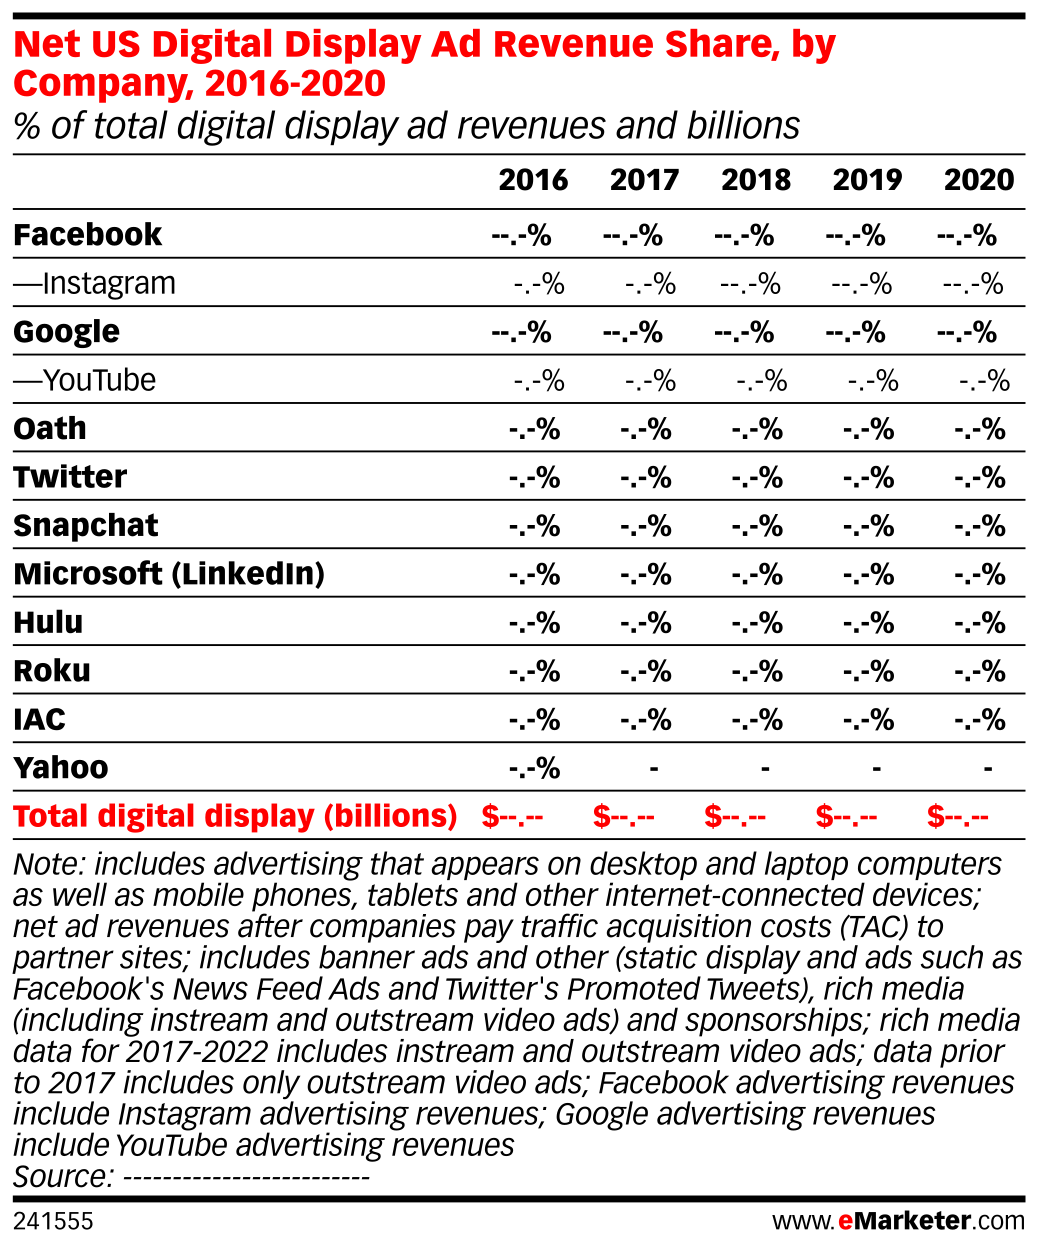 Net US Digital Display Ad Revenue Share, by Company, 2016-2020 (% of total digital display ad revenues and billions)